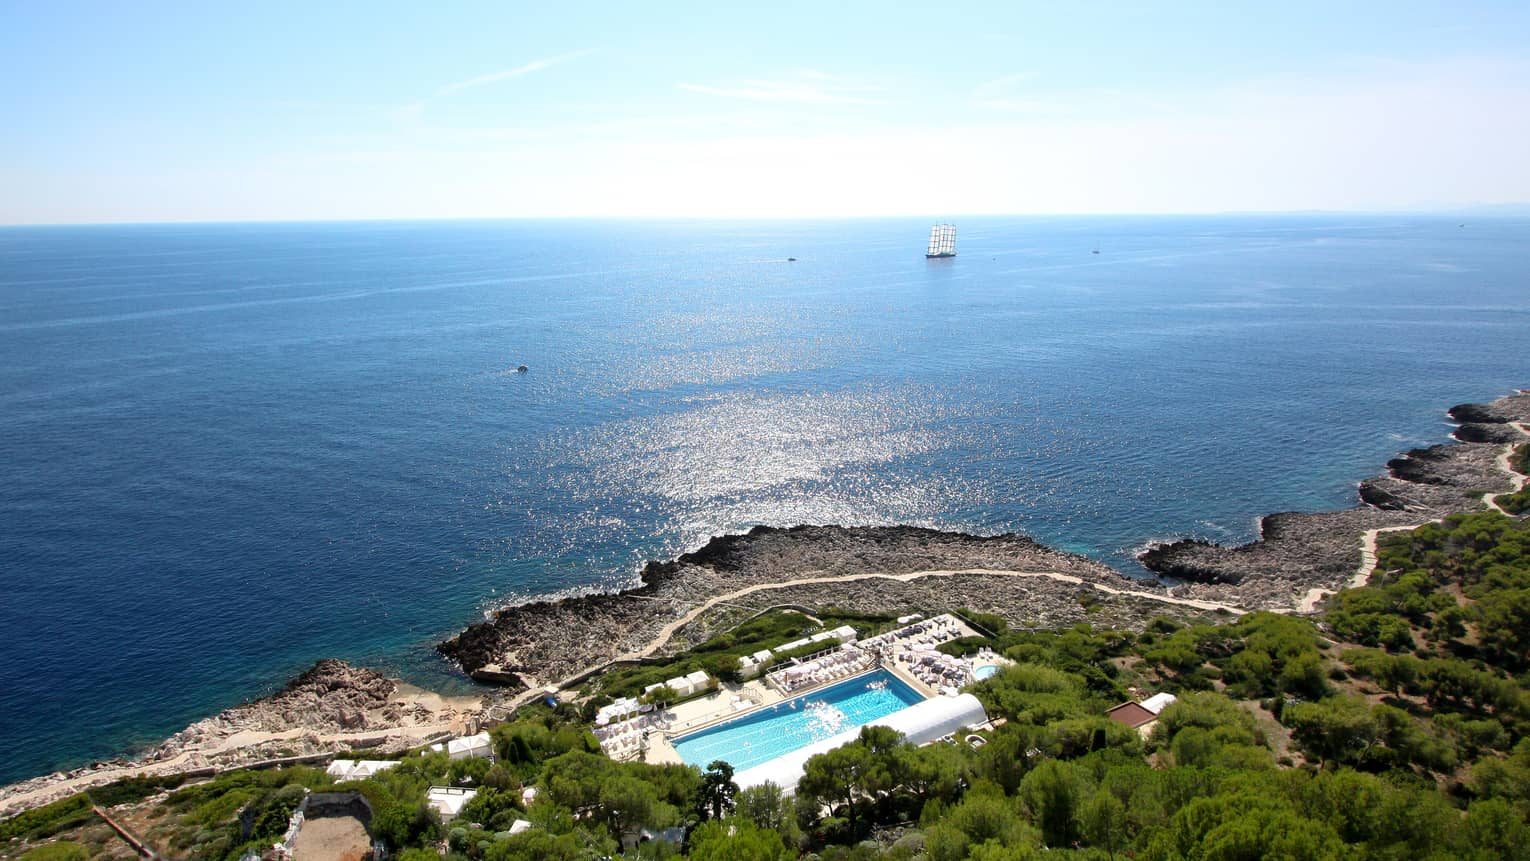 Aerial view of Four Seasons Cap Ferrat resort on lush mountain by sea